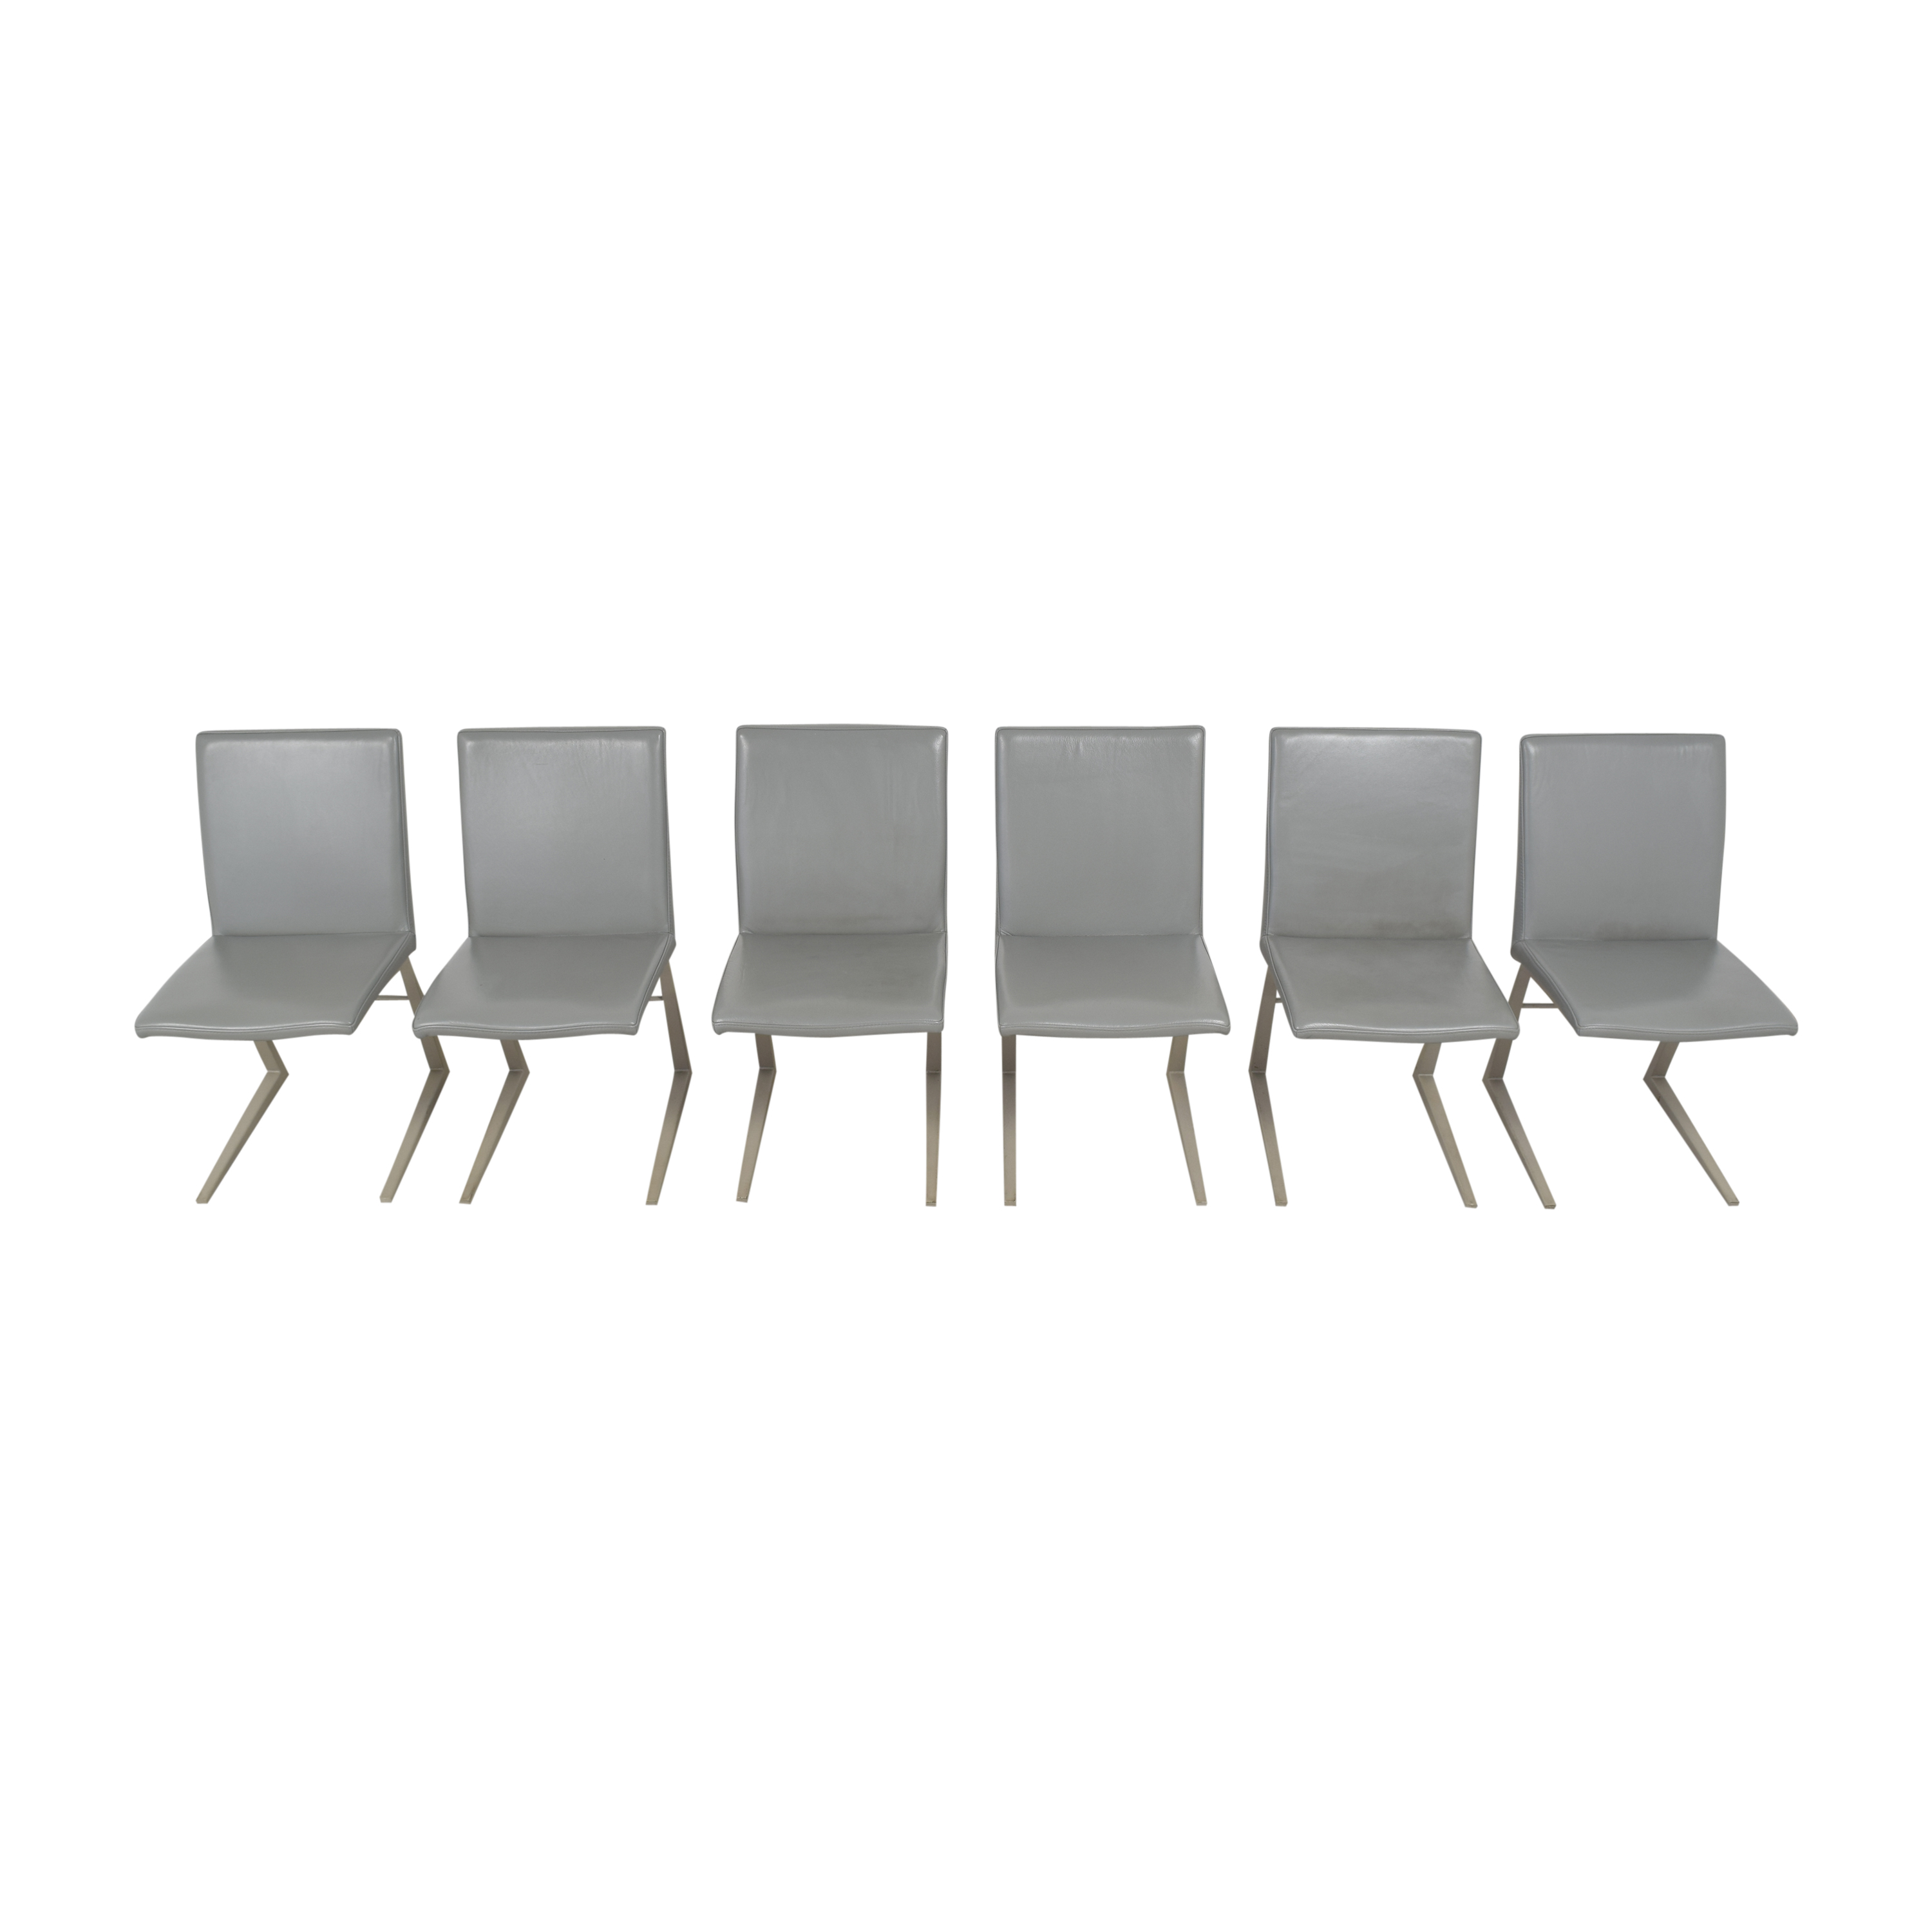 BoConcept BoConcept Mariposa Dining Chairs for sale